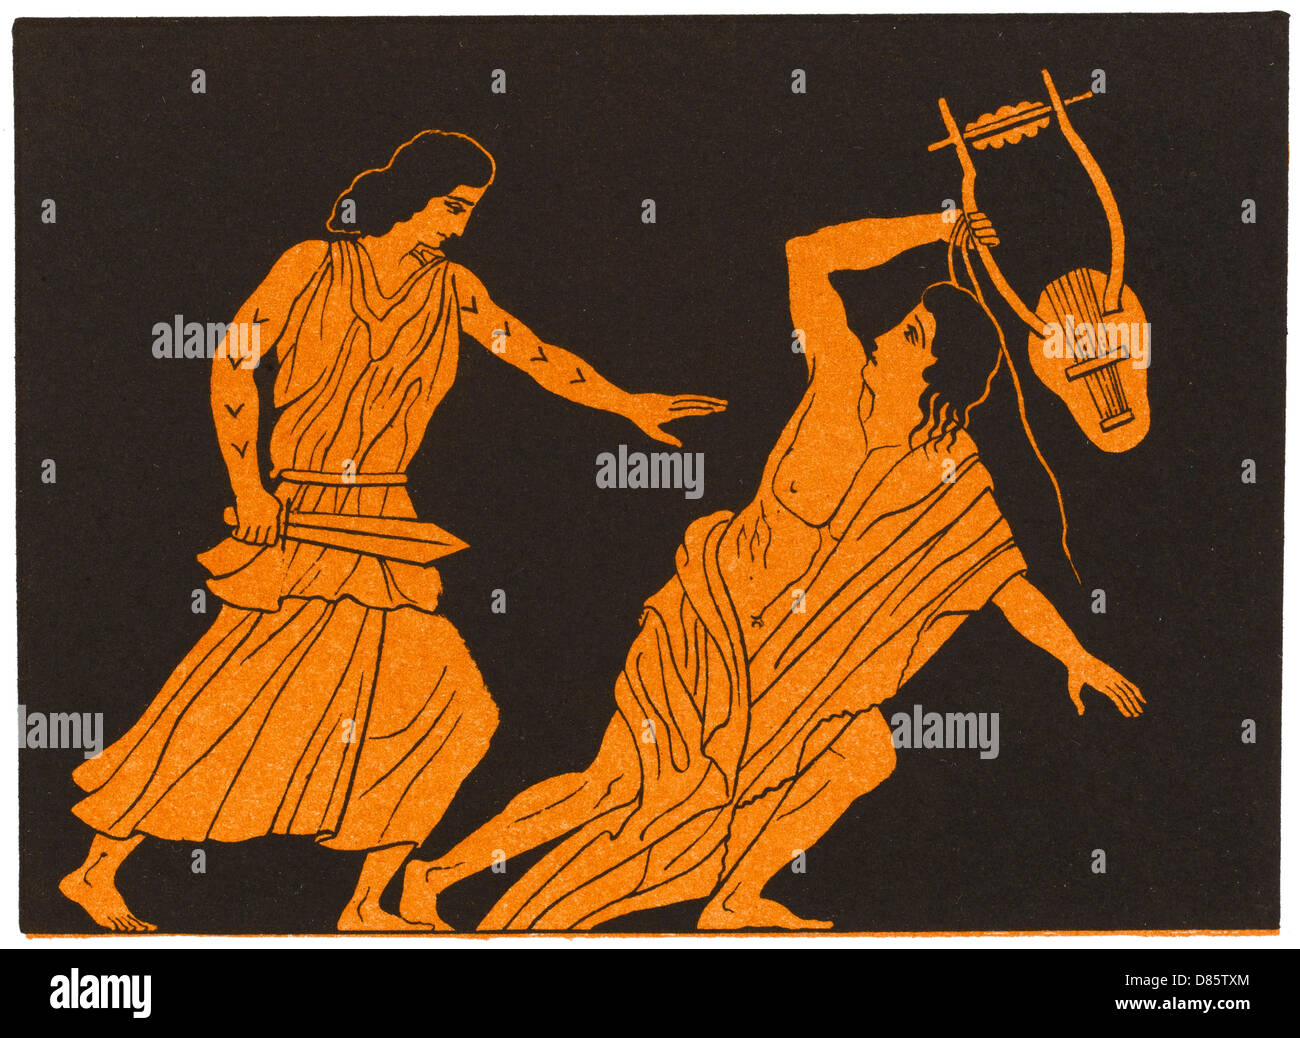 The Death Of Orpheus In Greek Myth - Stock Image